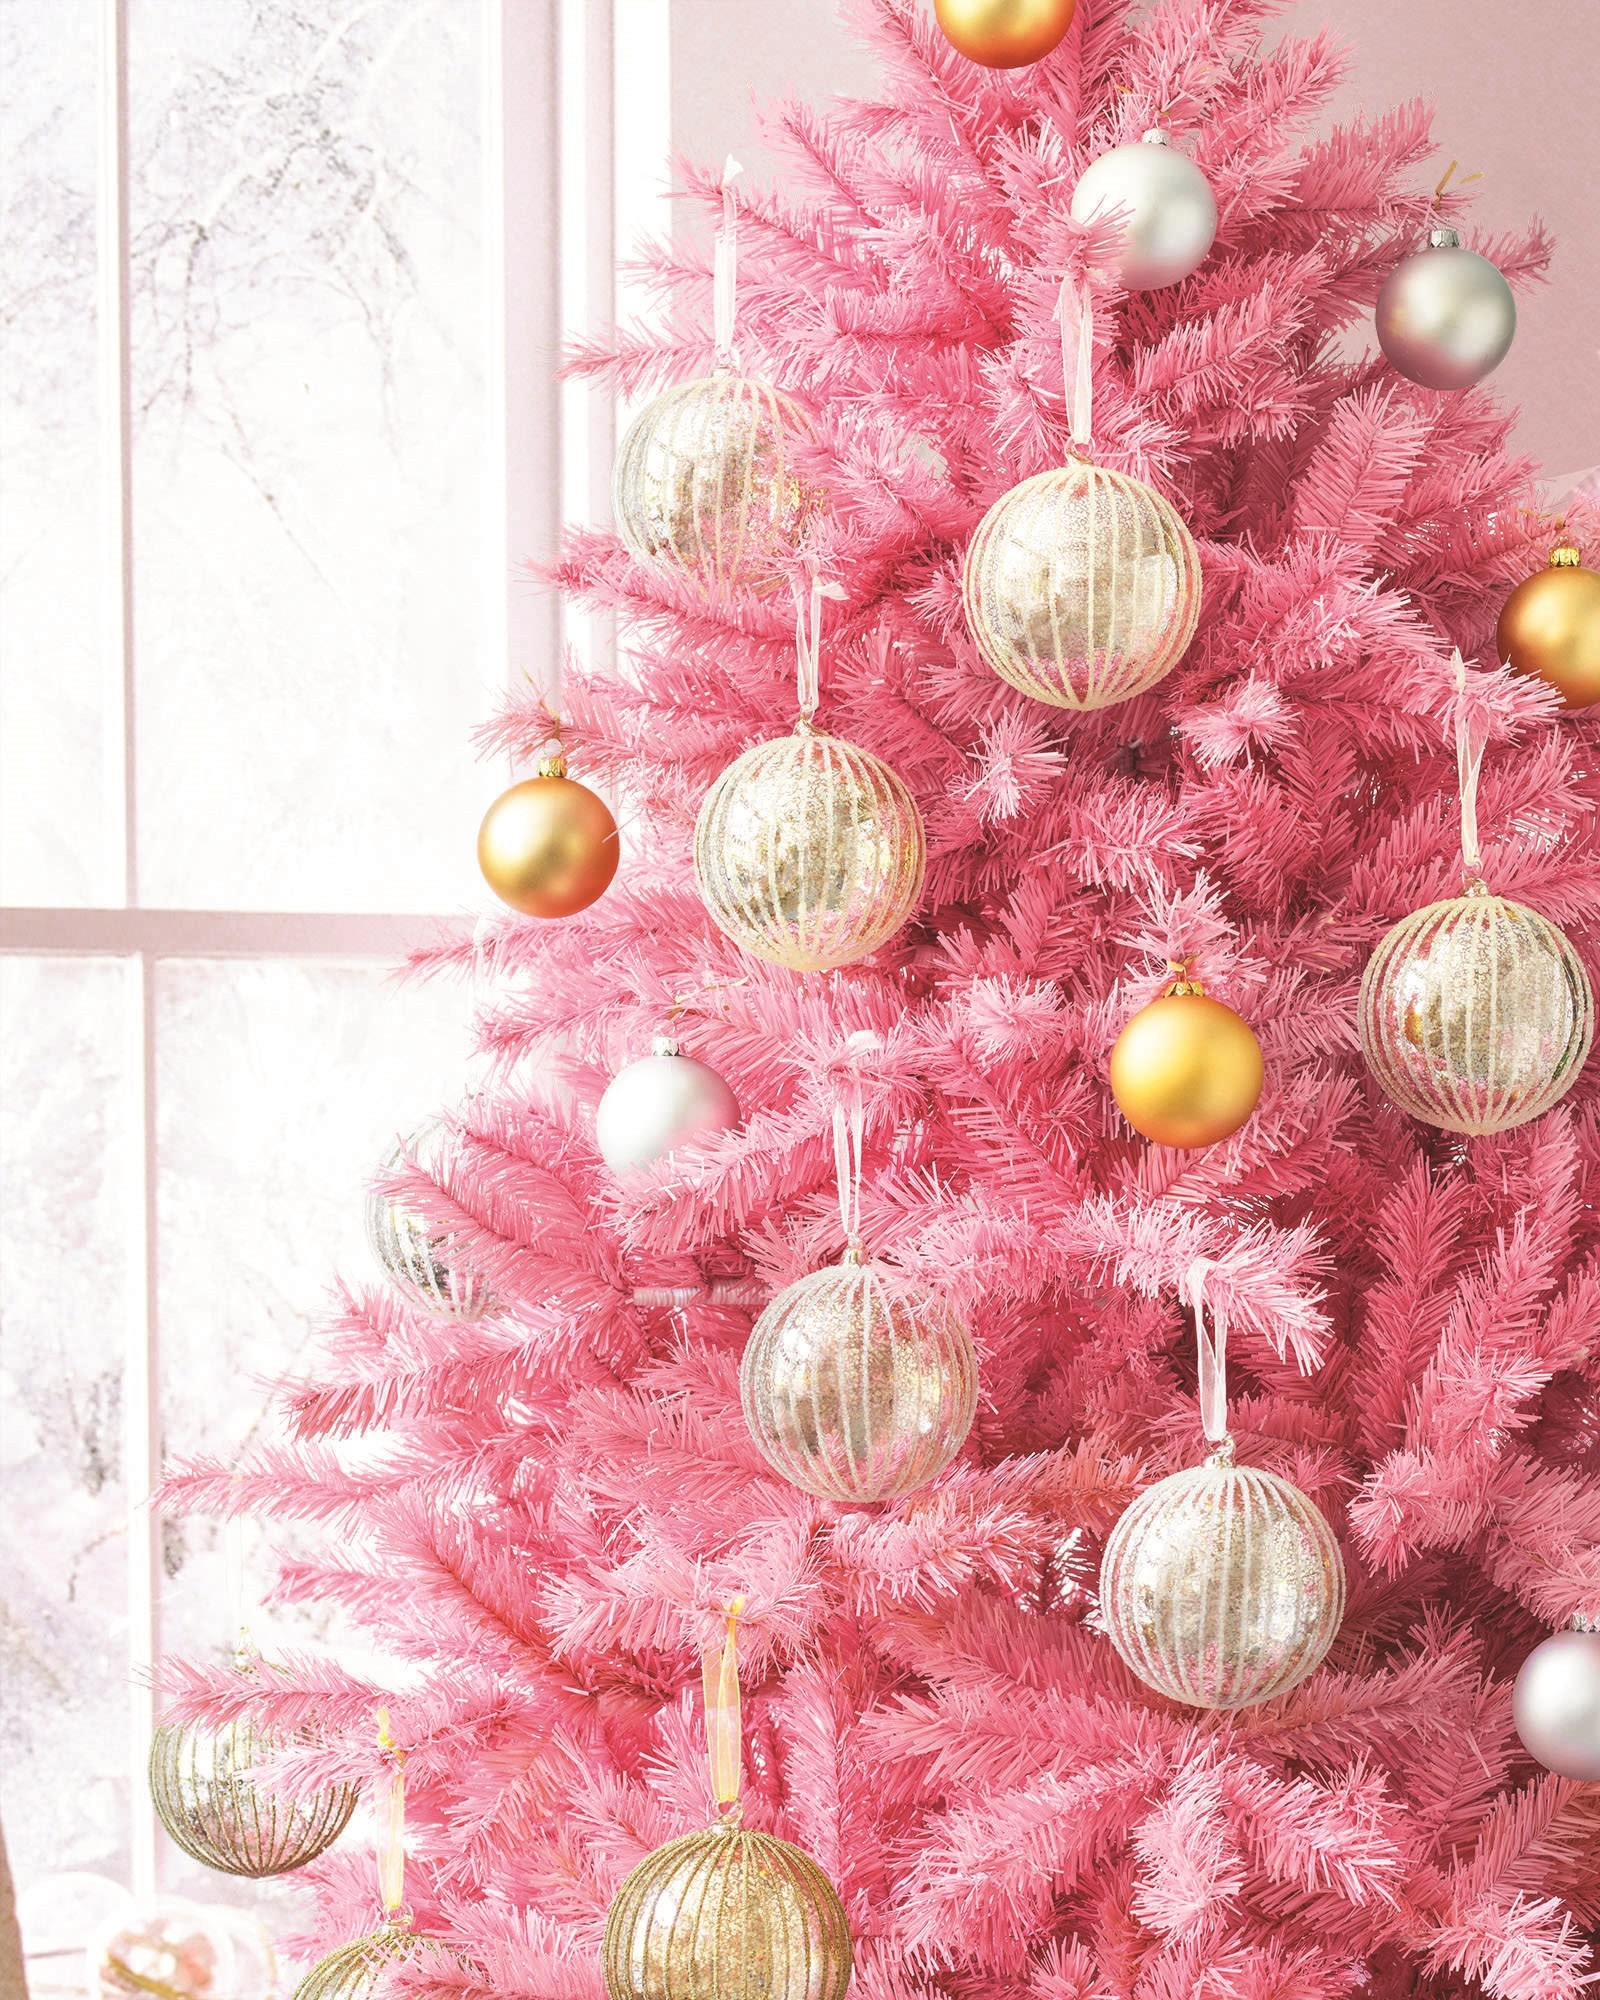 Pink And White Christmas Tree: Pink Christmas Wallpaper (61+ Images